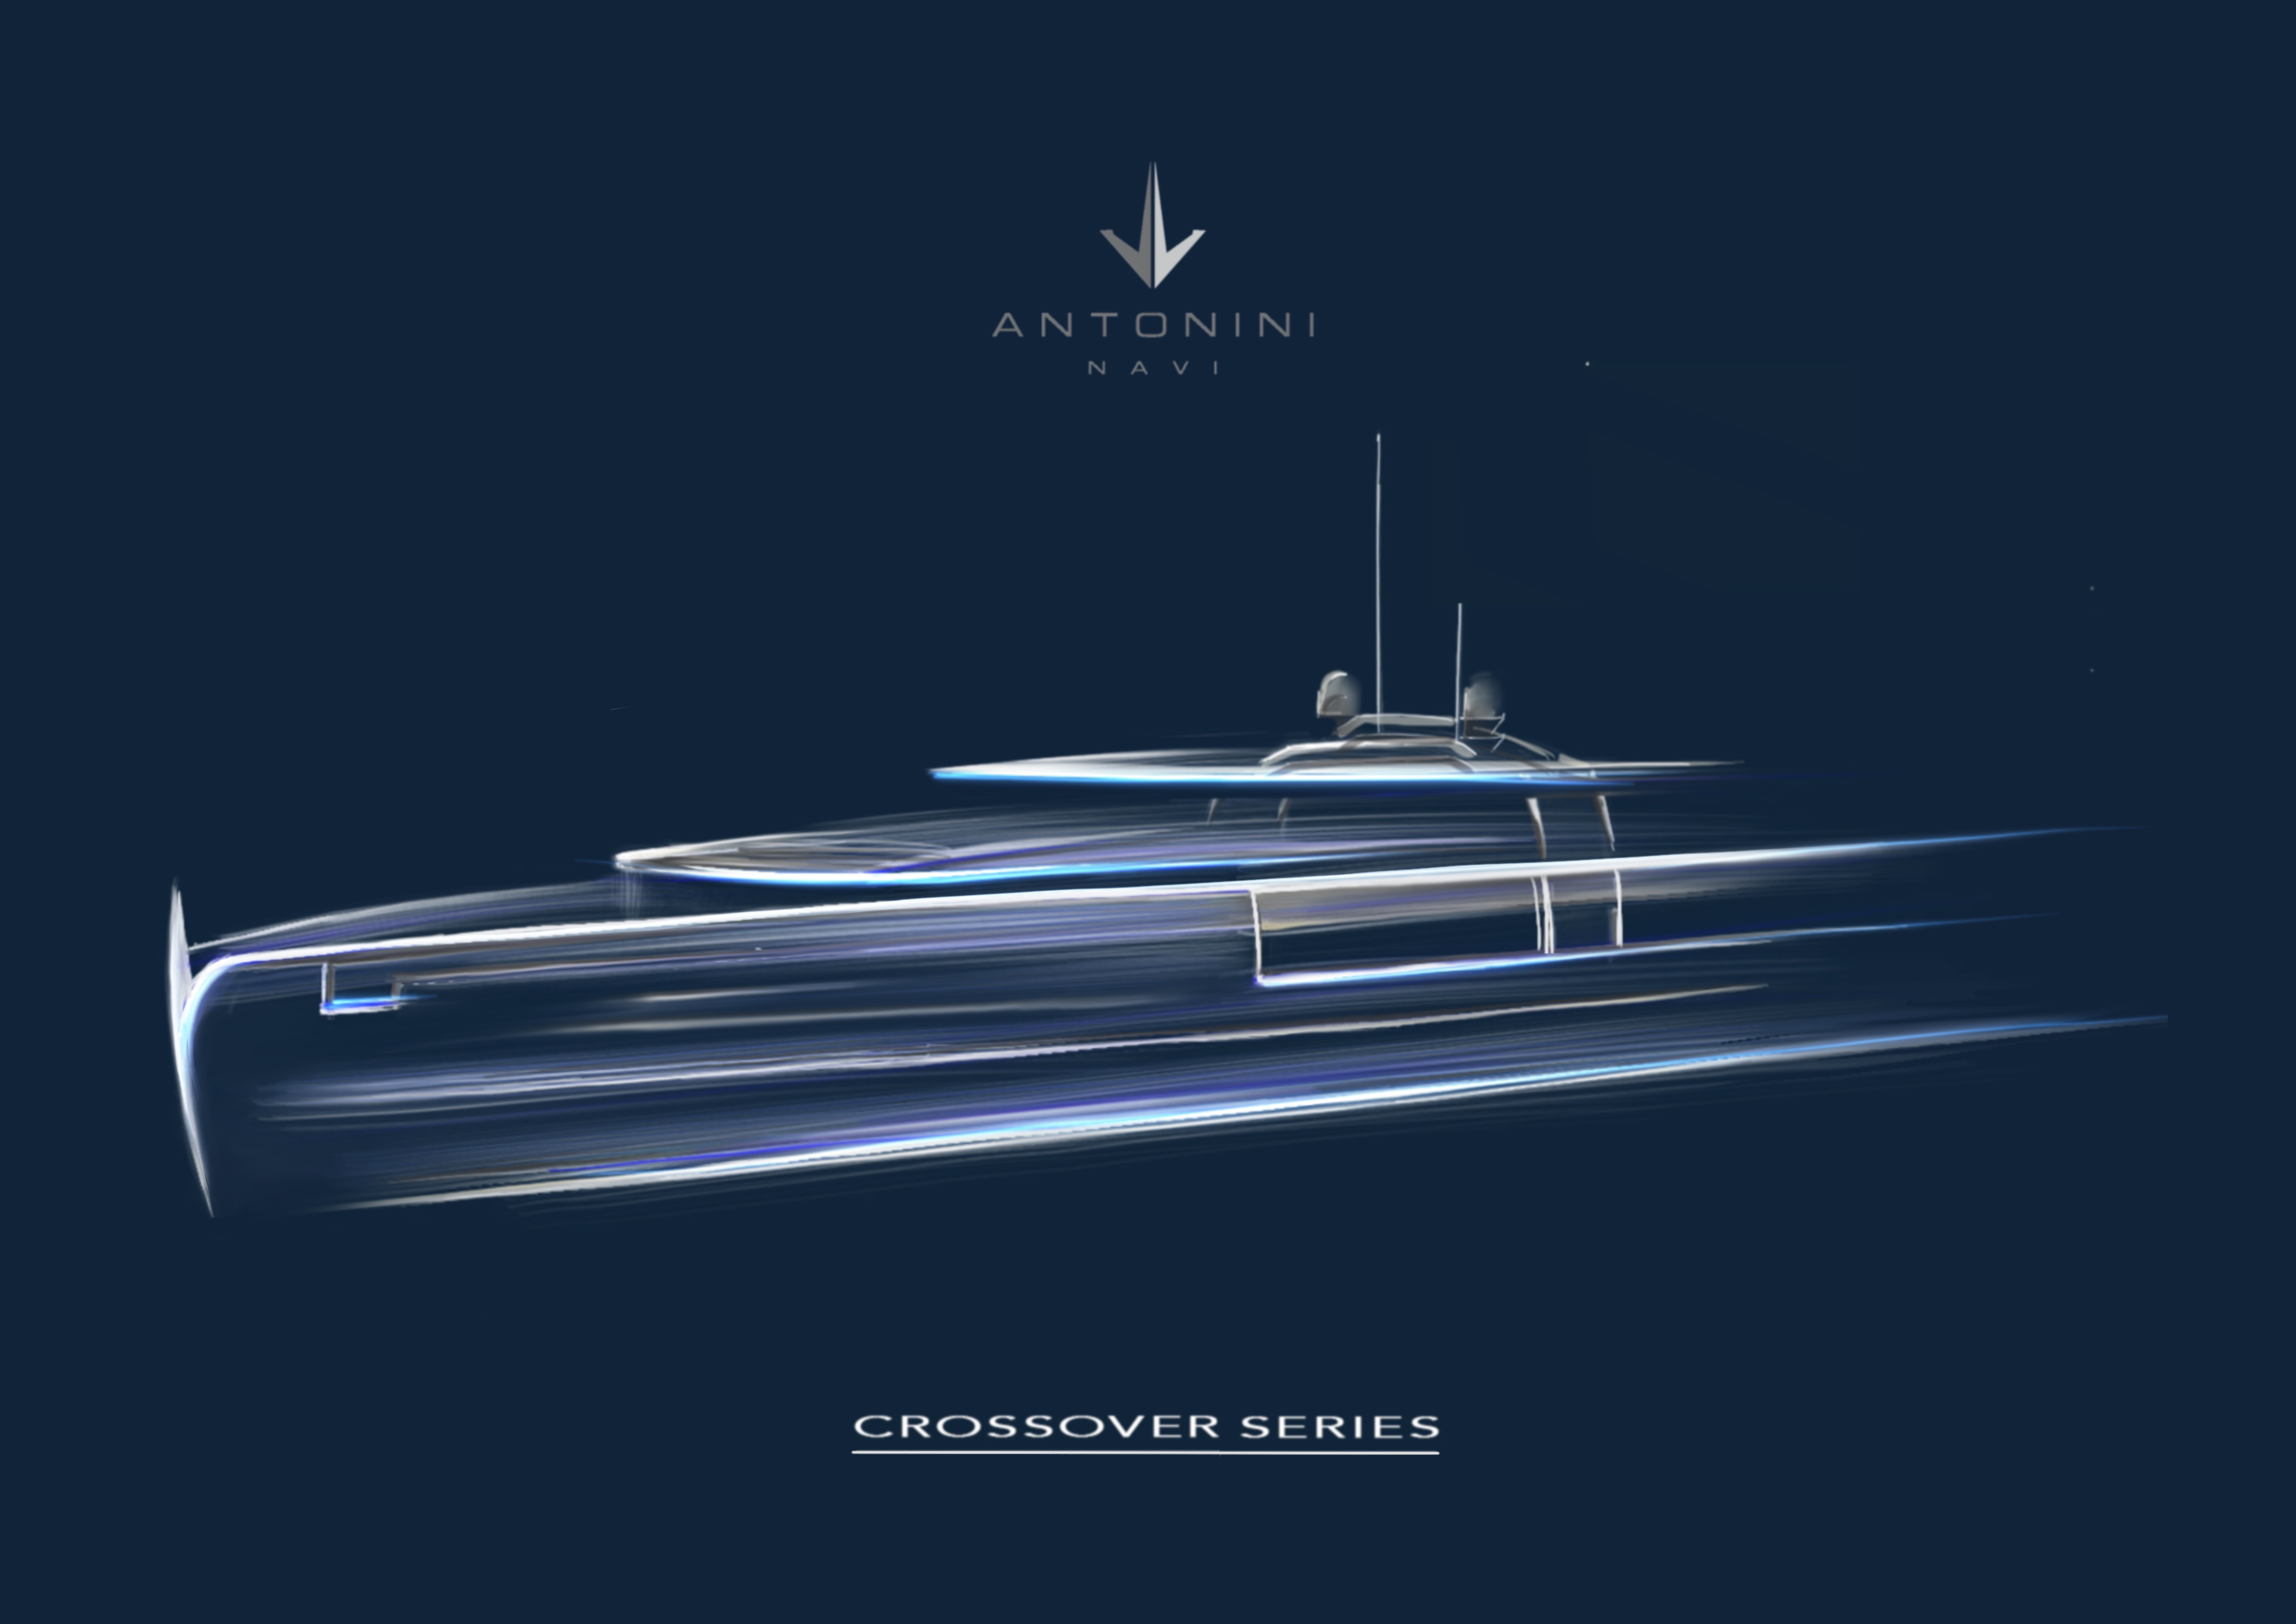 Antonini Navi: a new shipyard is born